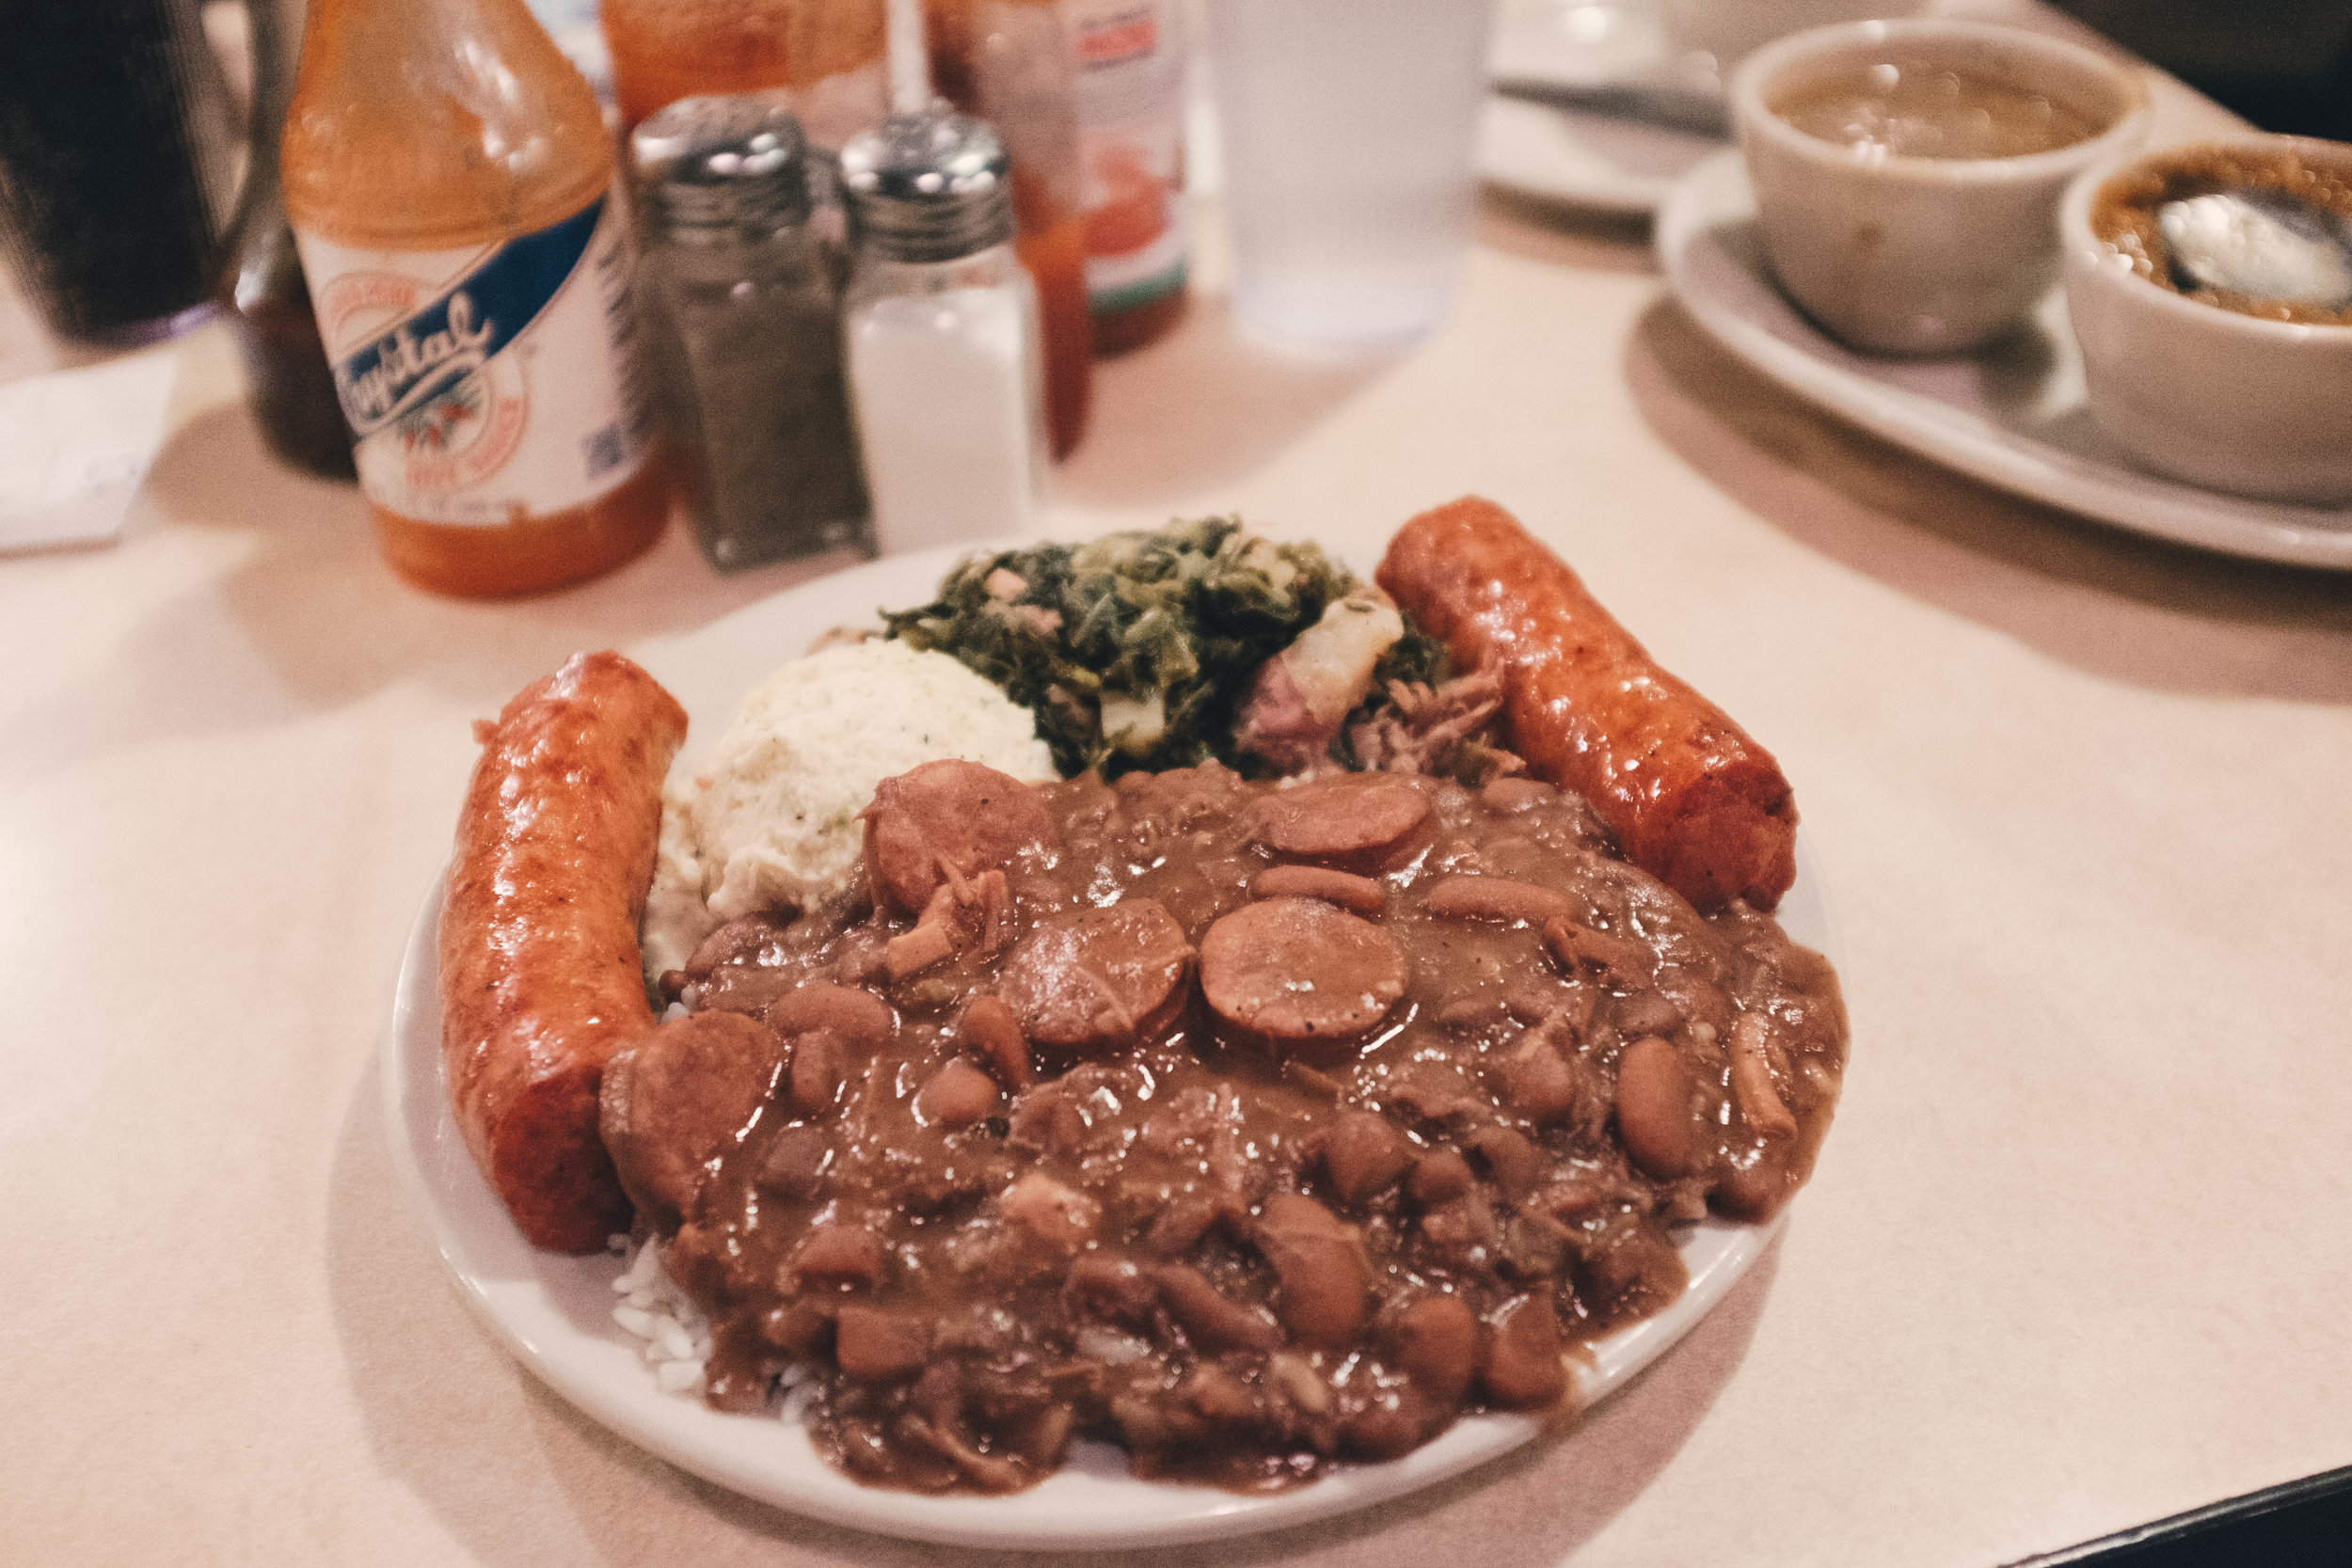 Cajun fare wasn't my favorite, but this red beans and rice with sausage was quite an experience.